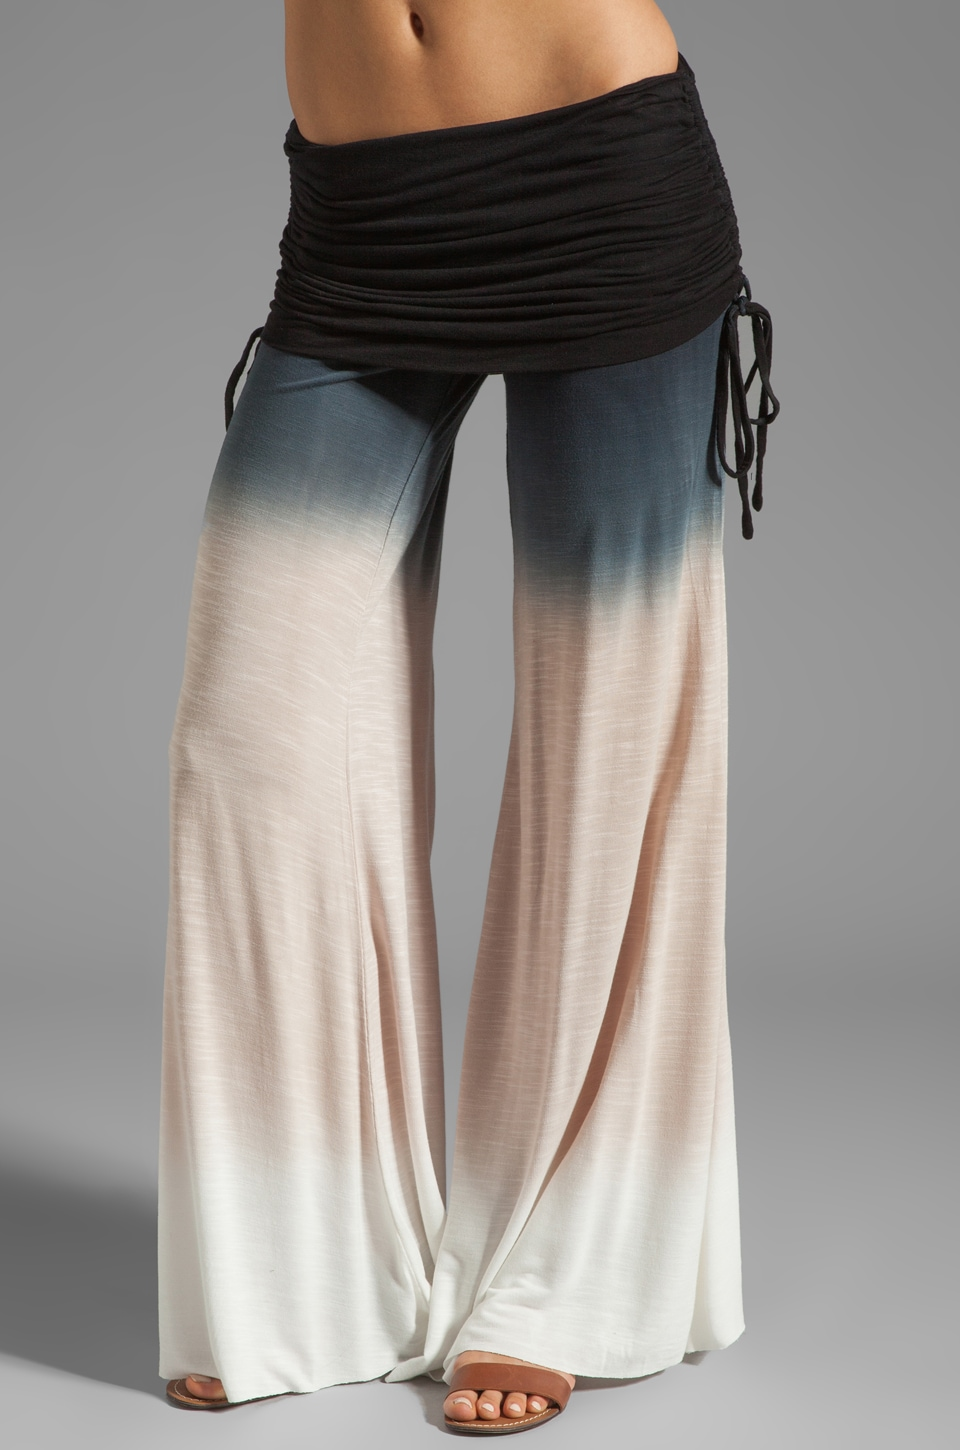 Young, Fabulous & Broke Sierra Pant in Black Sunset Ombre